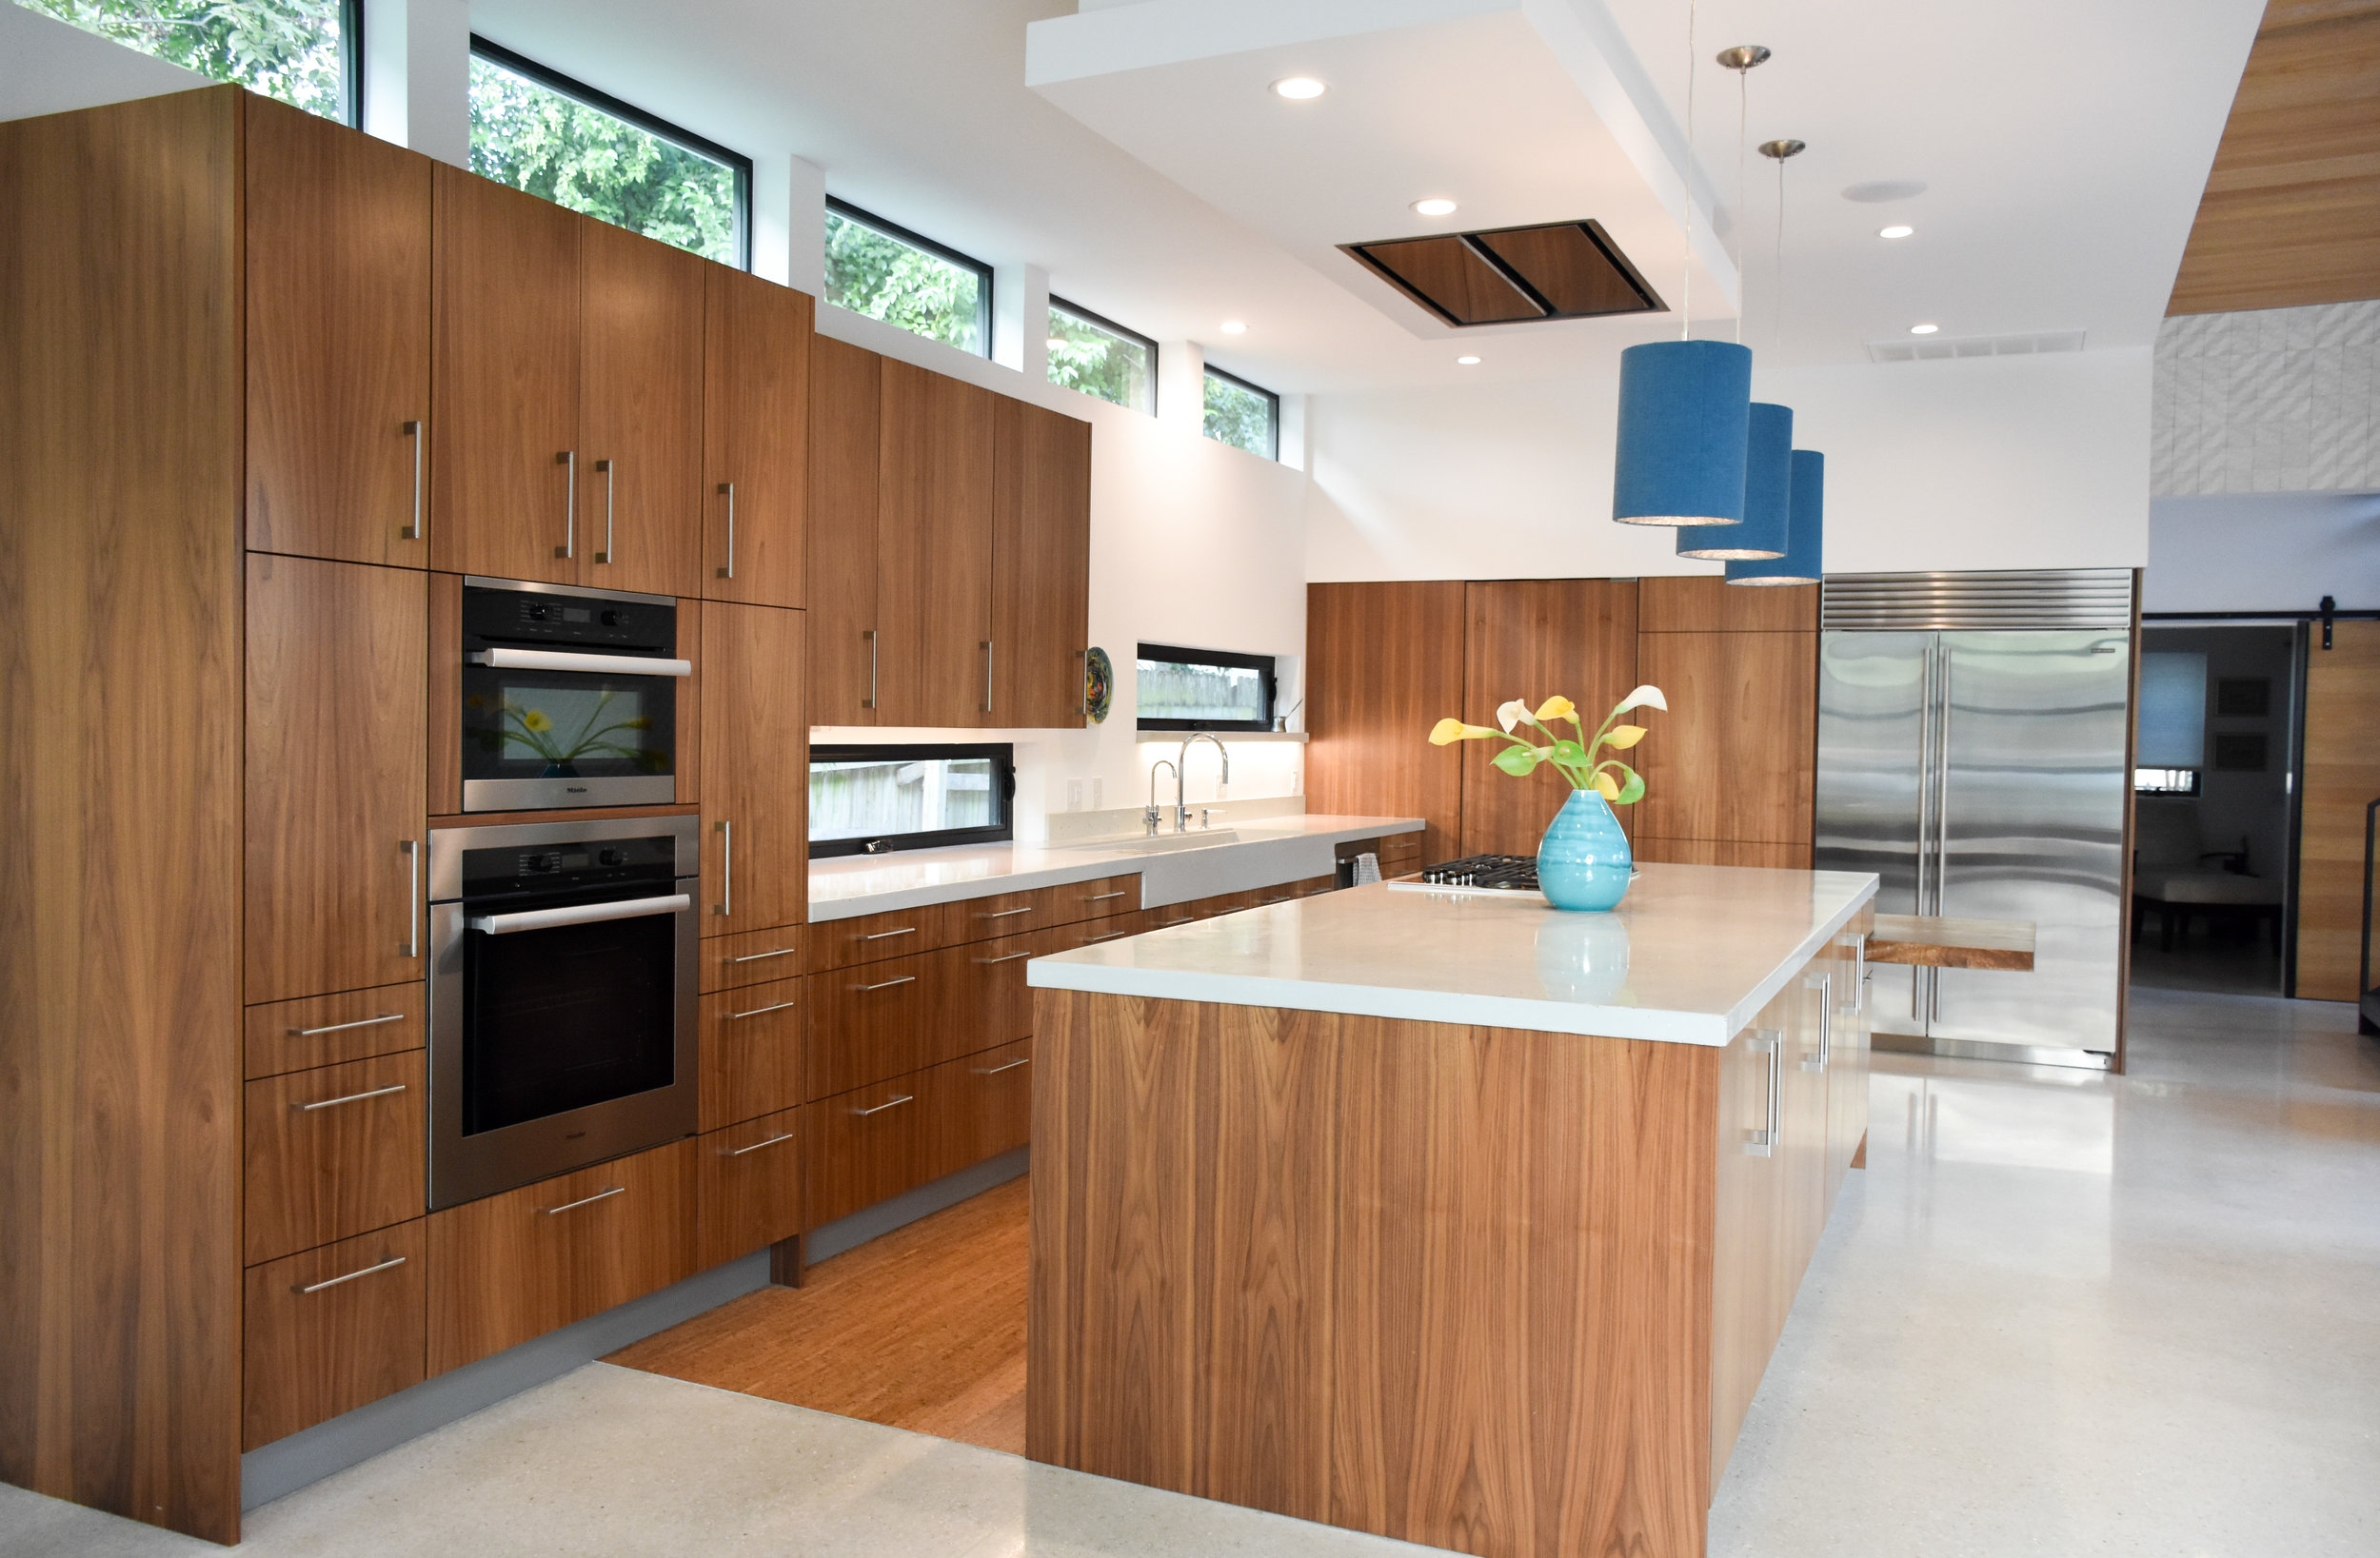 2017-2ndSt_Kitchen-2.jpg